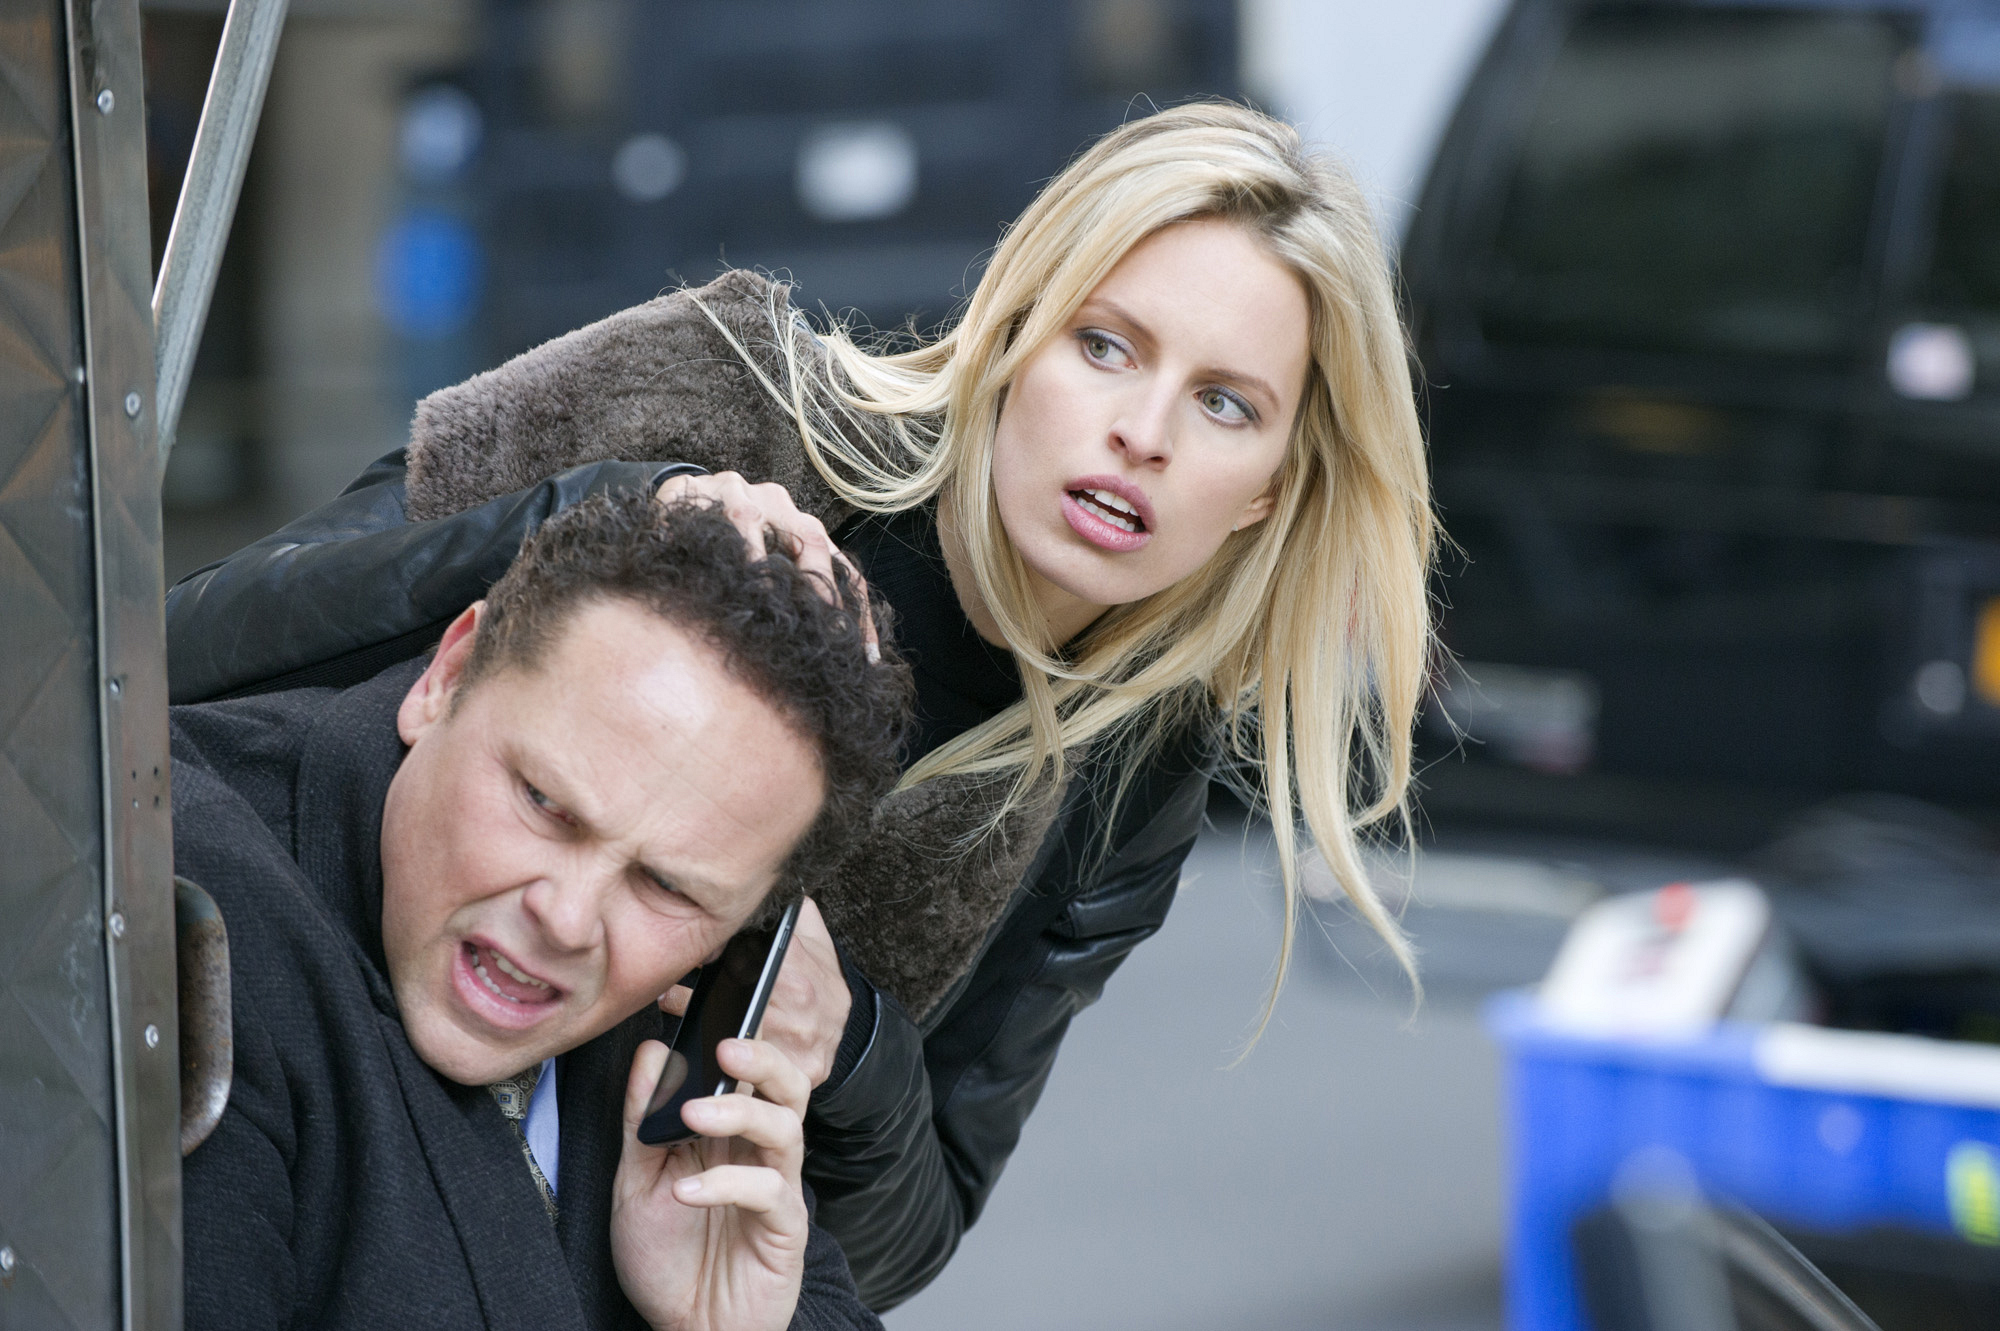 Detective Fusco is Forced to Protect a Supermodel